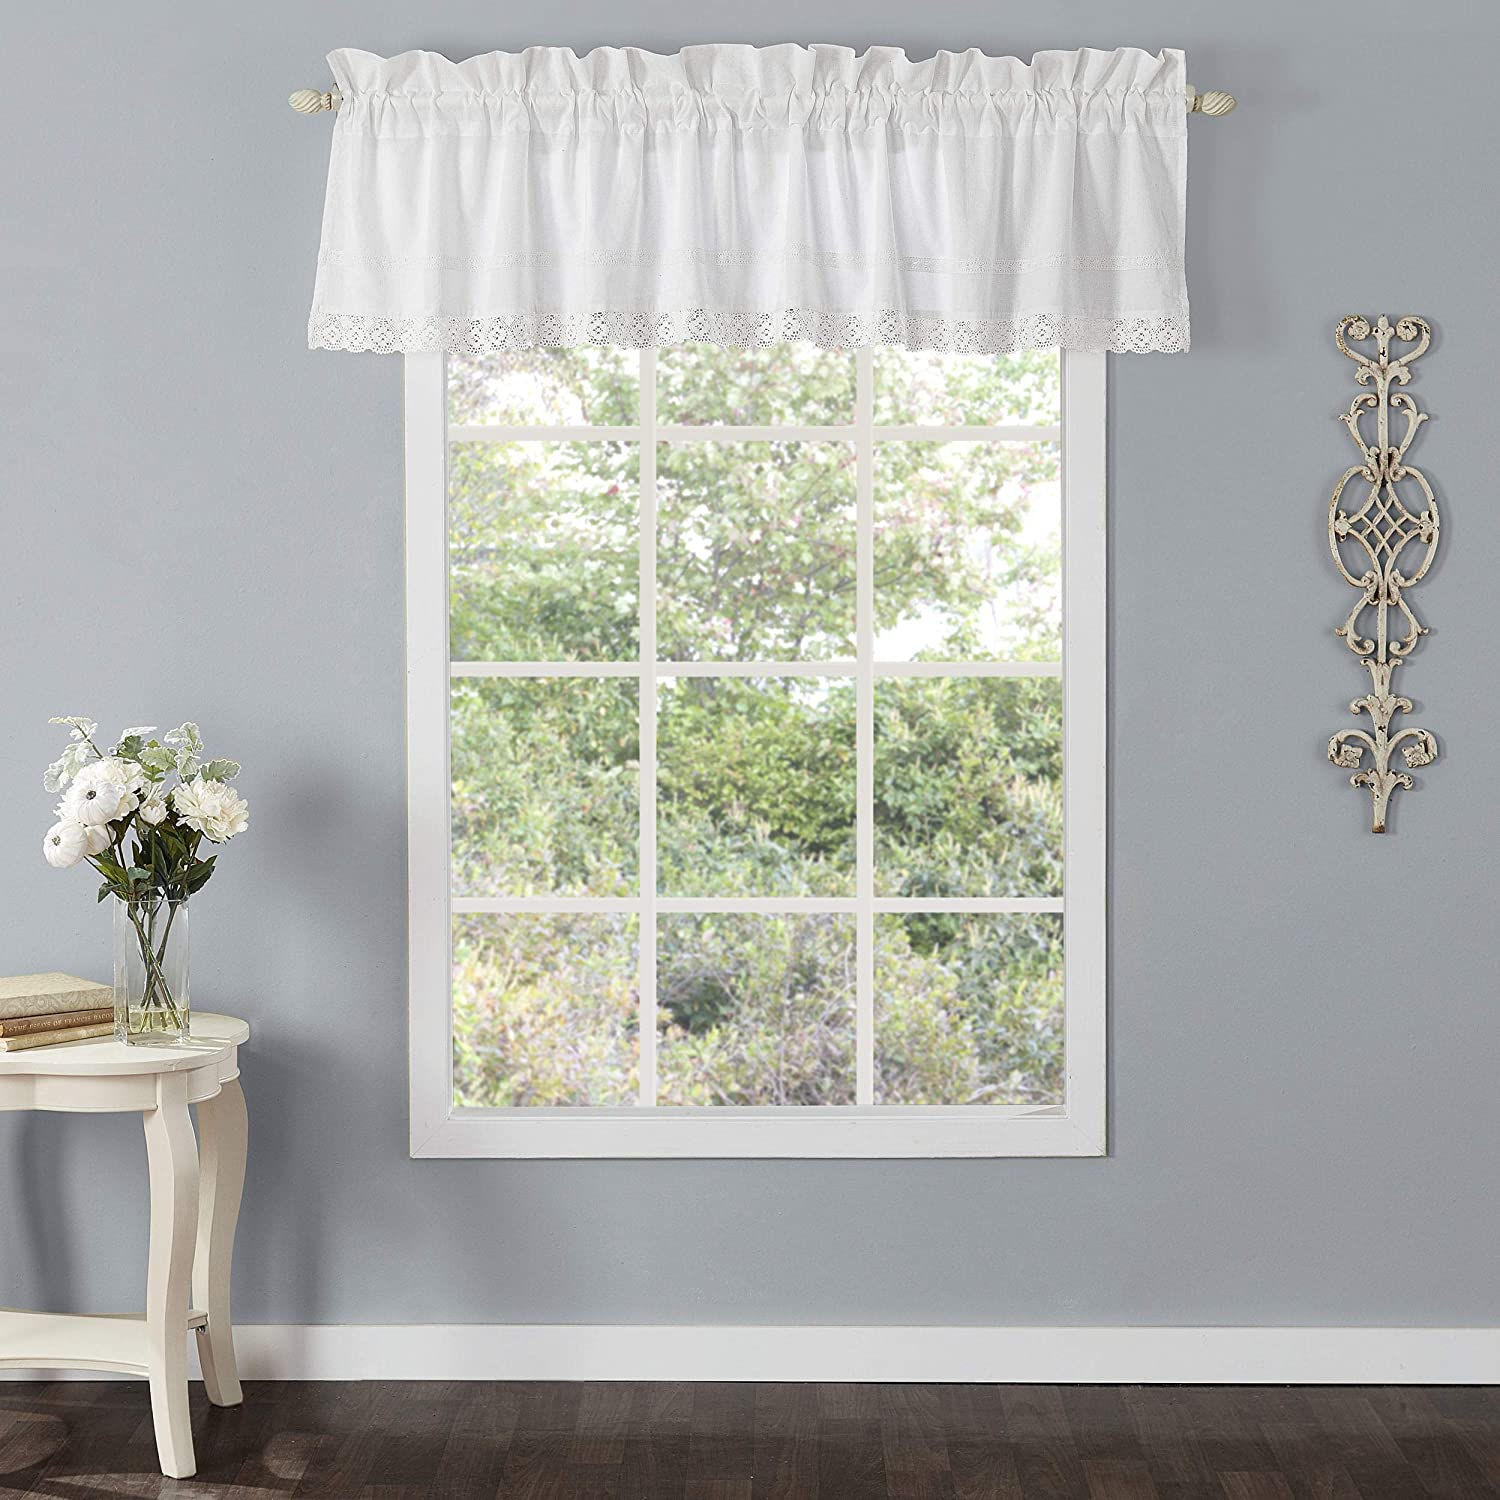 Laura Ashley Home | Annabella Bedding Collection | Stylish Premium Hotel Quality Valance Curtain, Chic Decorative Window Treatment for Home Décor, White